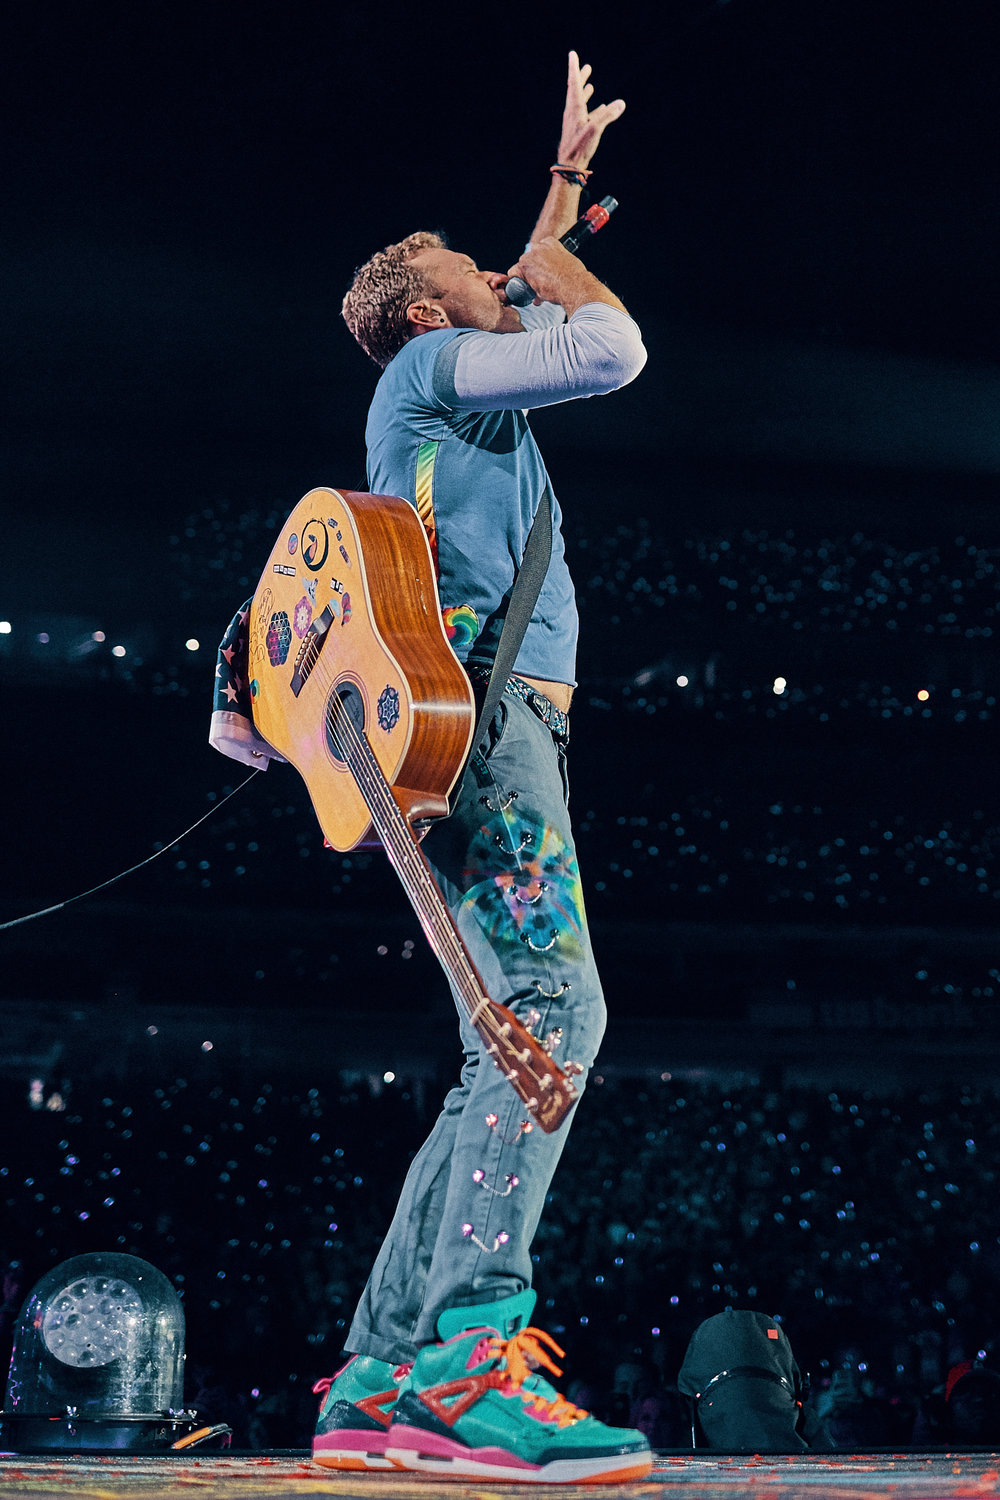 Coldplay_US_Bank_Stadium_Minneapolis_Minnesota_Photography_By_Joe_Lemke_040.JPG